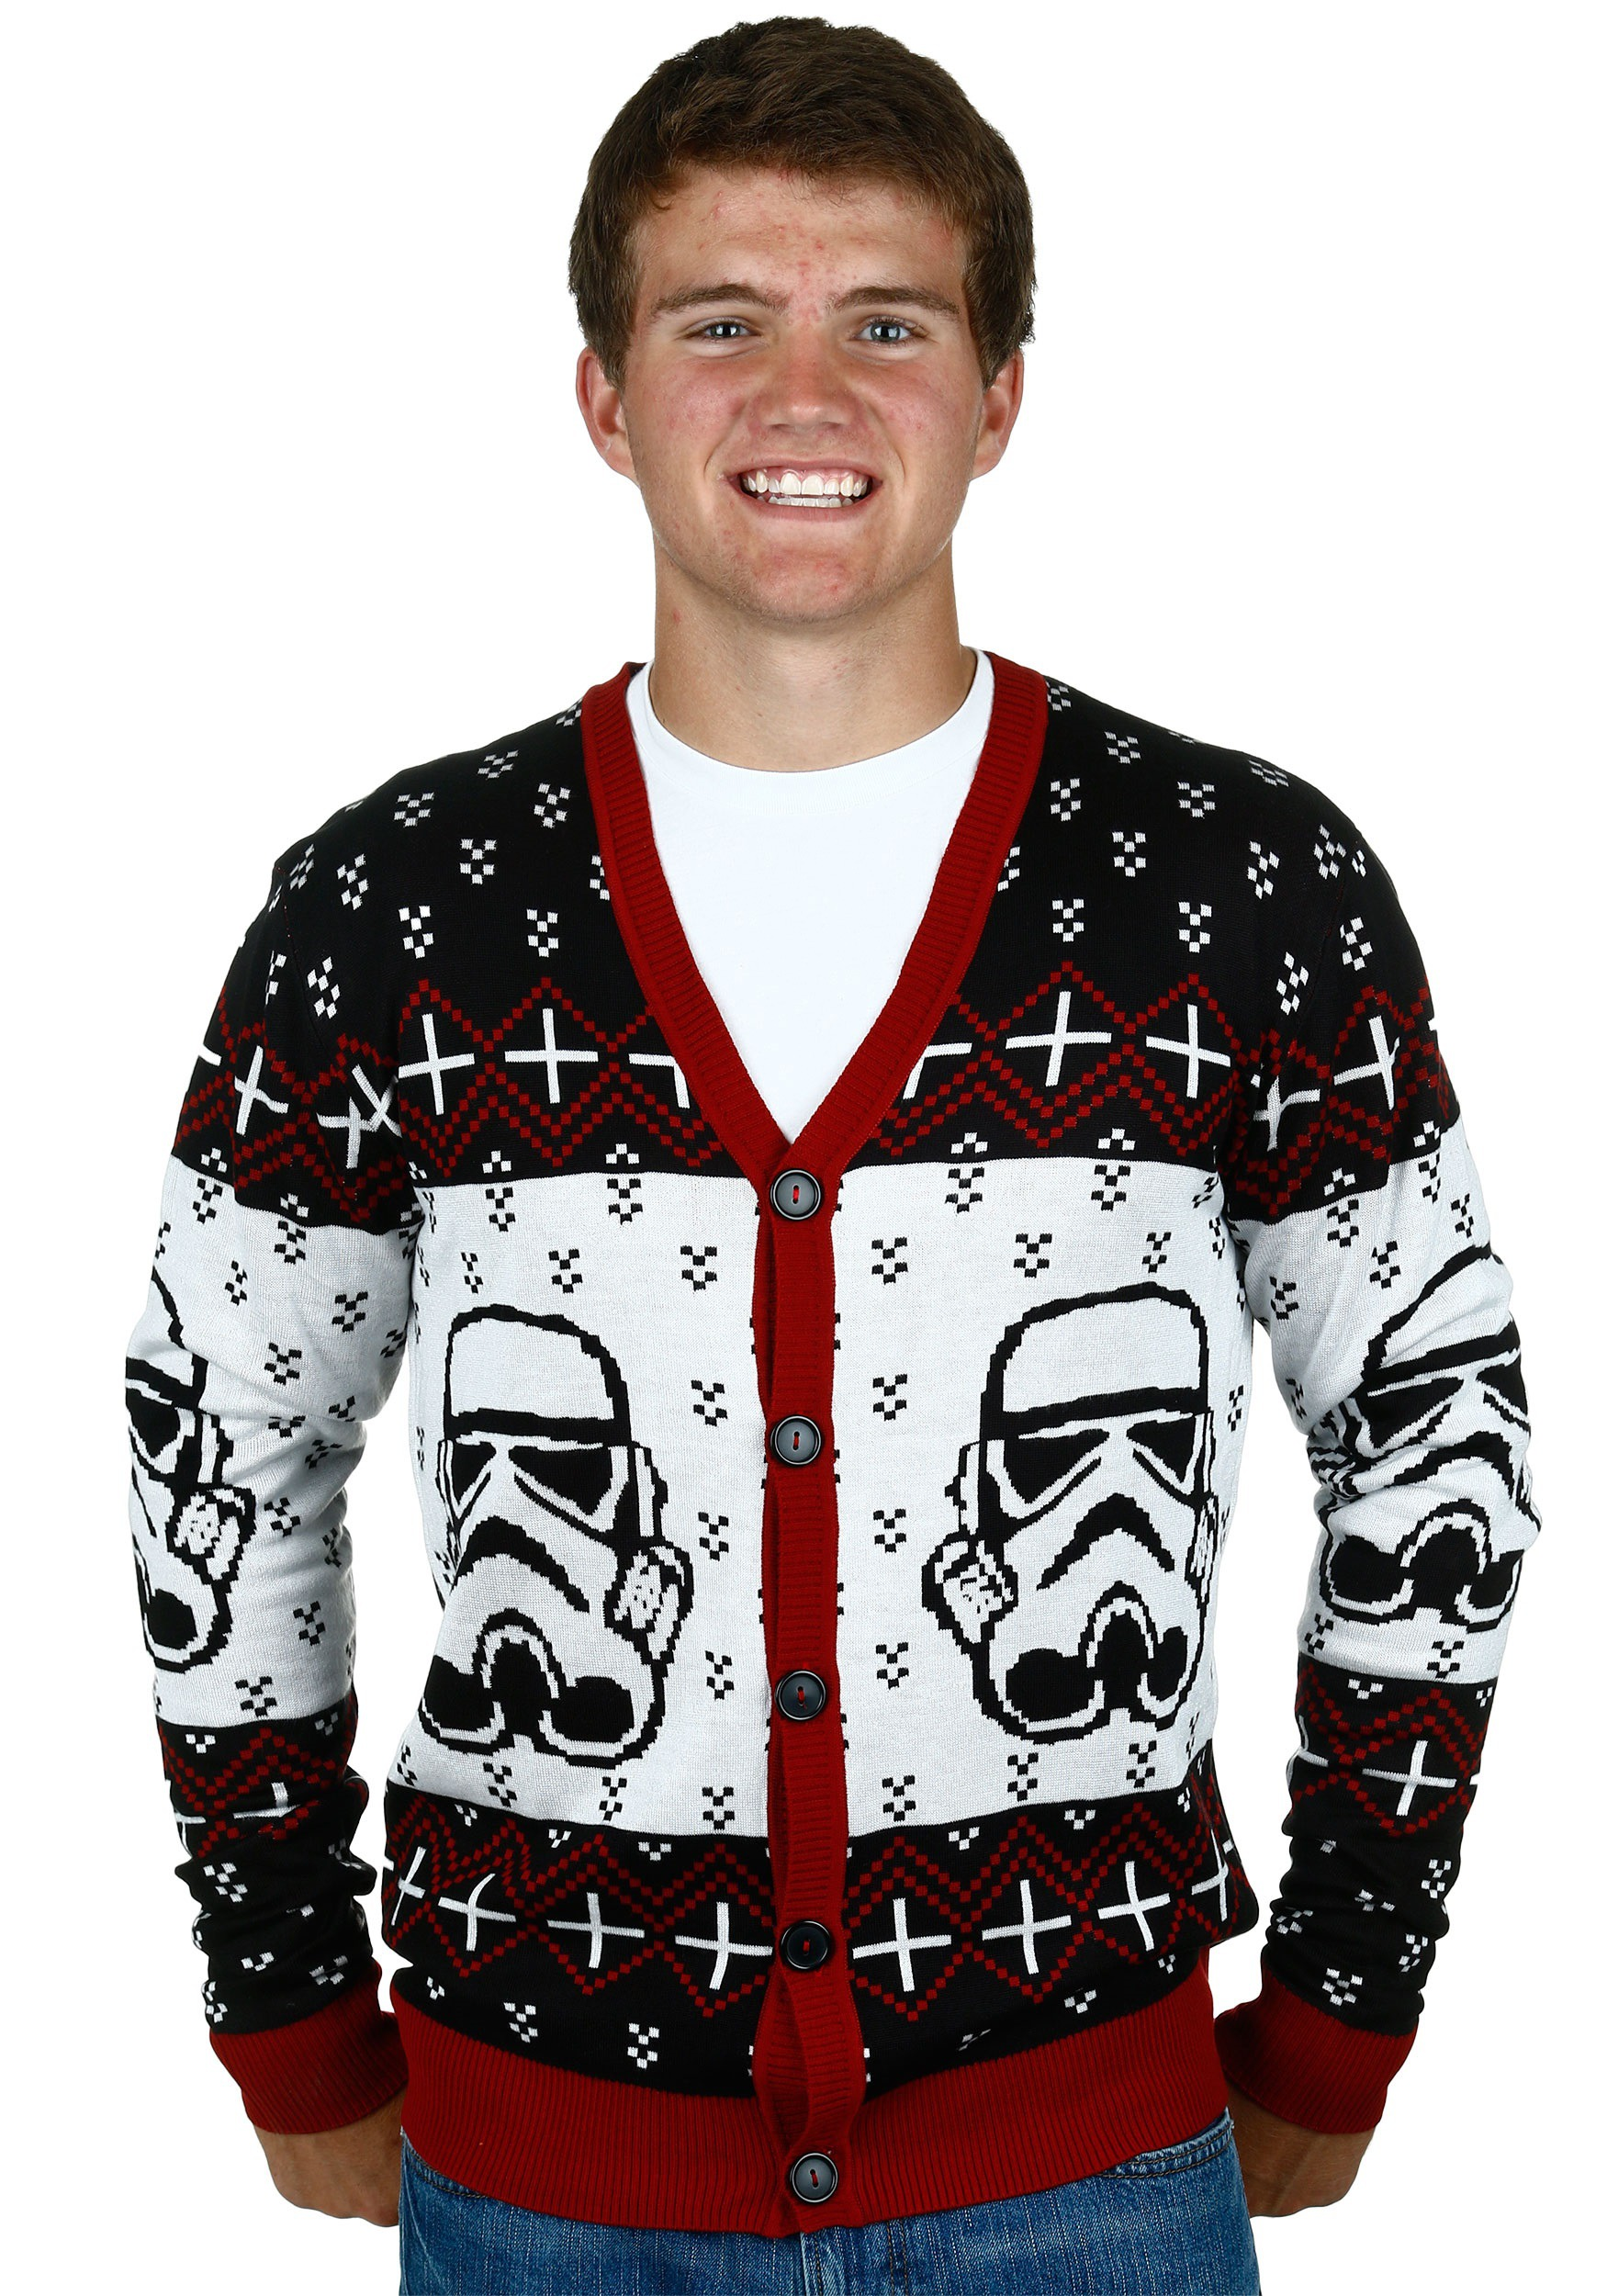 Image of Star Wars Stormtrooper Men's Ugly Christmas Cardigan